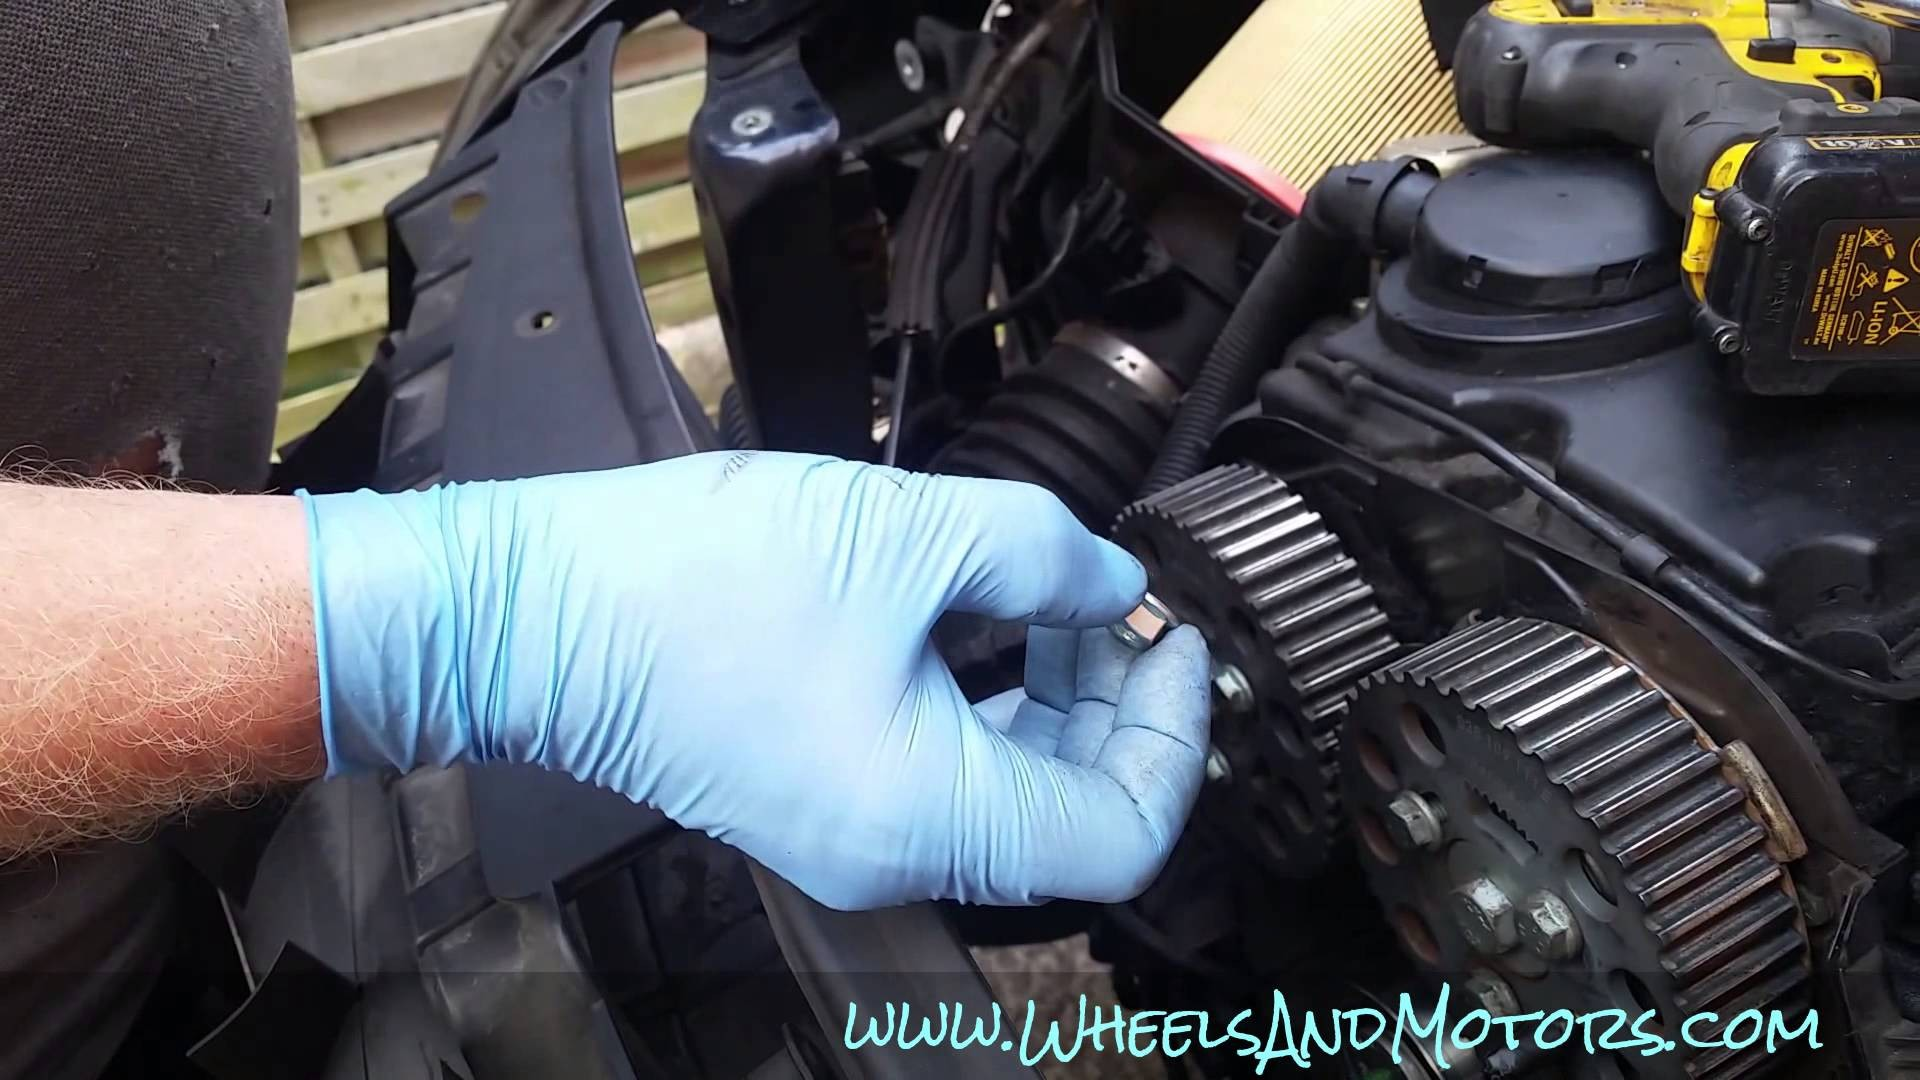 Vr6 Alternator Wiring Diagram Vw Golf Mk3 Fuse Engine Timing 2002 Jetta Tdi How To Replace Belt Cambelt And Water Pump On